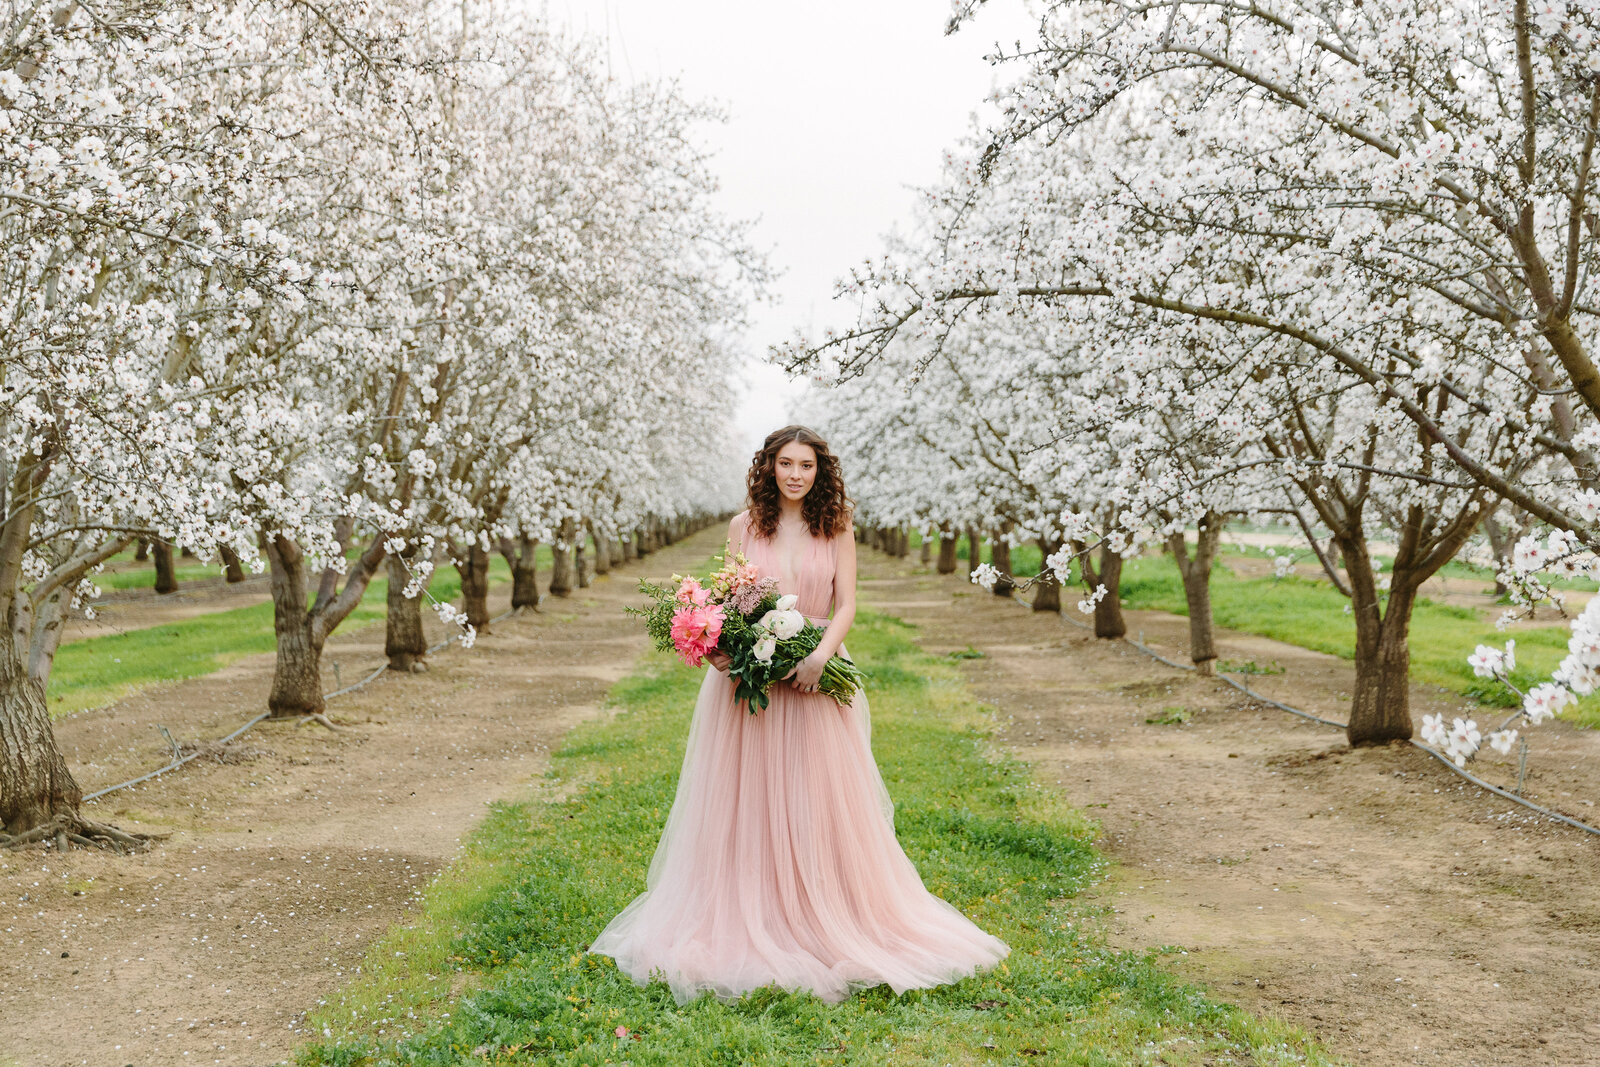 049-larissa-cleveland-editorial-fashion-wedding_photographer-san-francisco-carmel-napa-california-LCphoto-orchard-finals-086